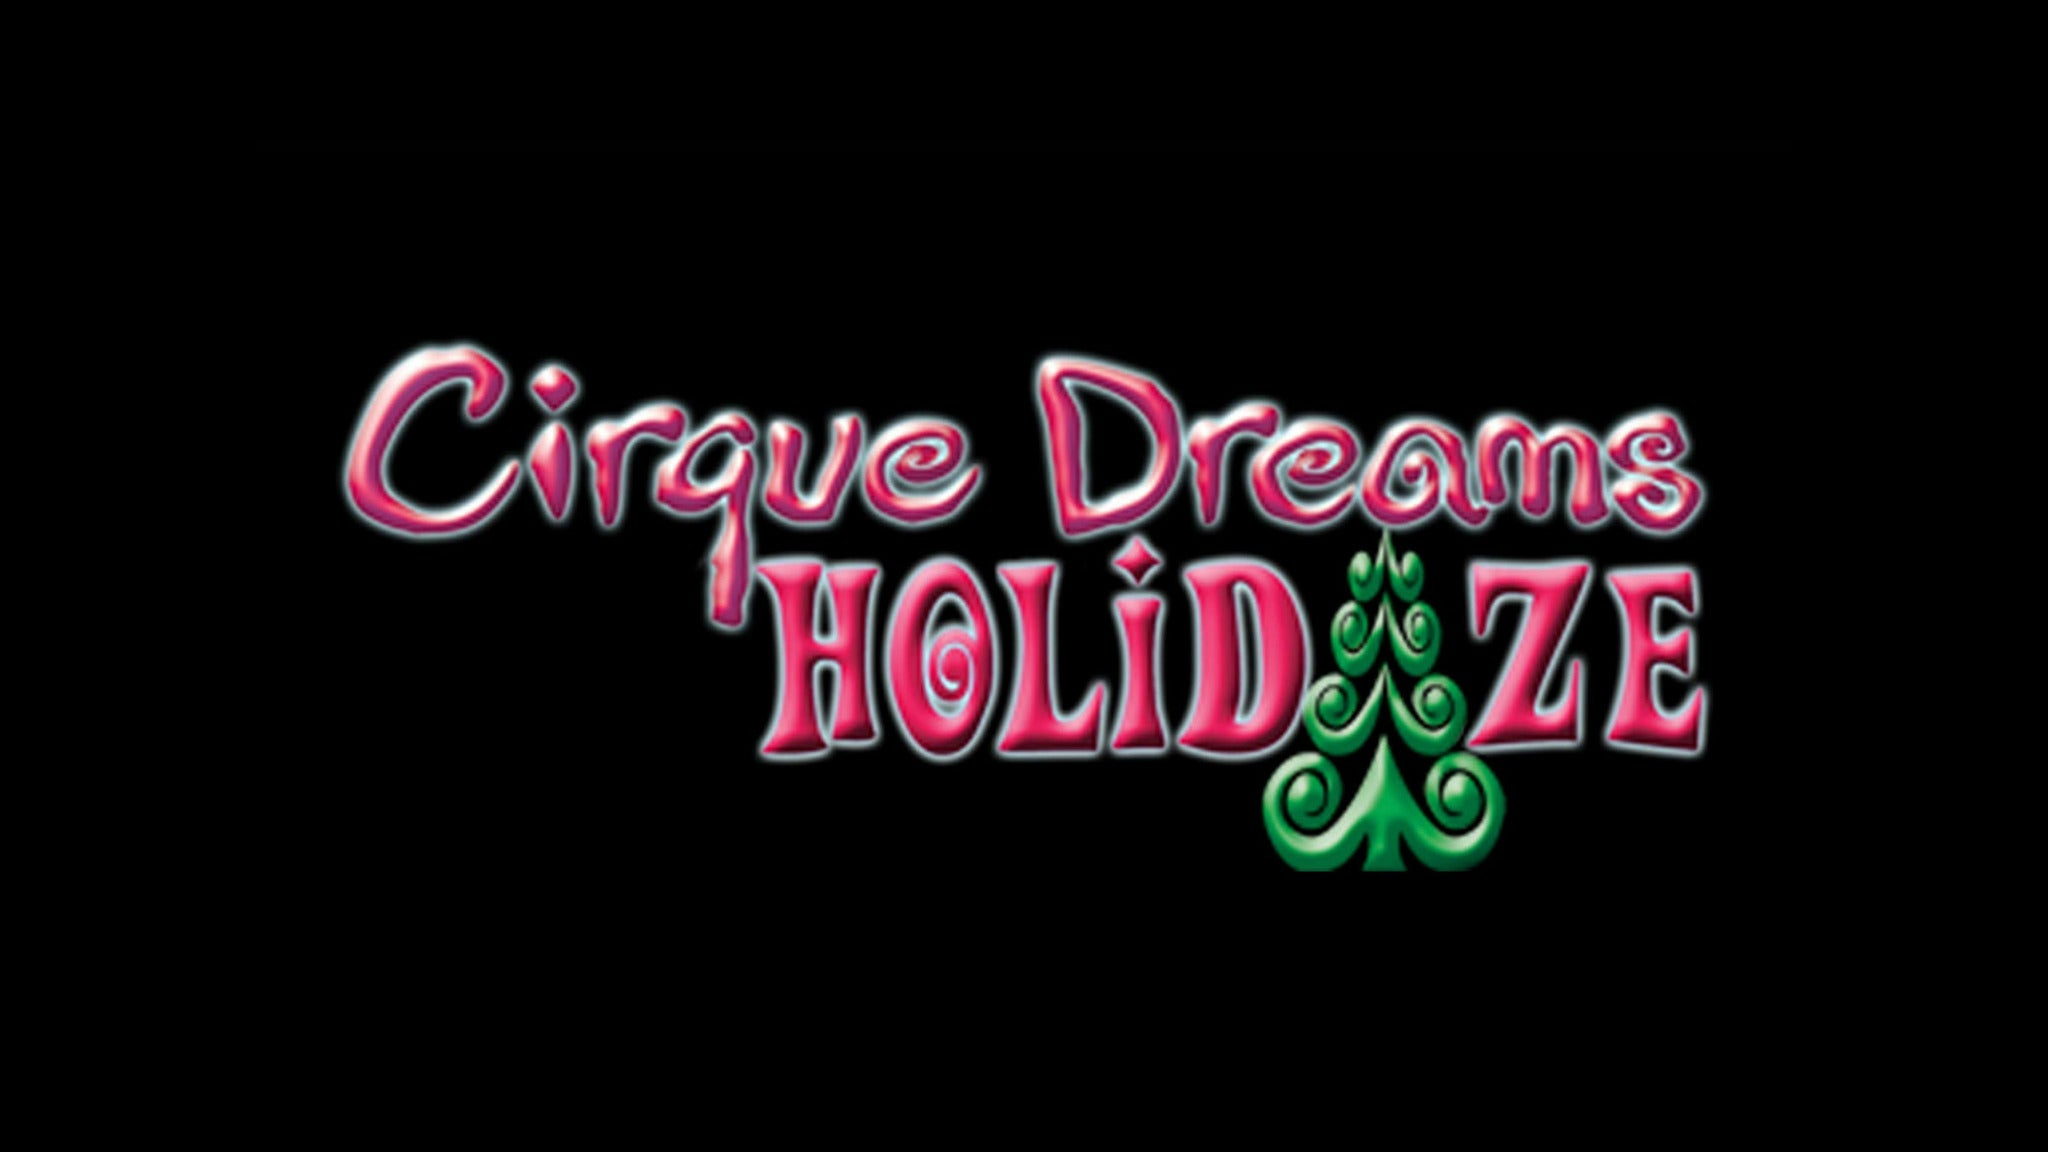 Cirque Dreams Holidaze (Touring)